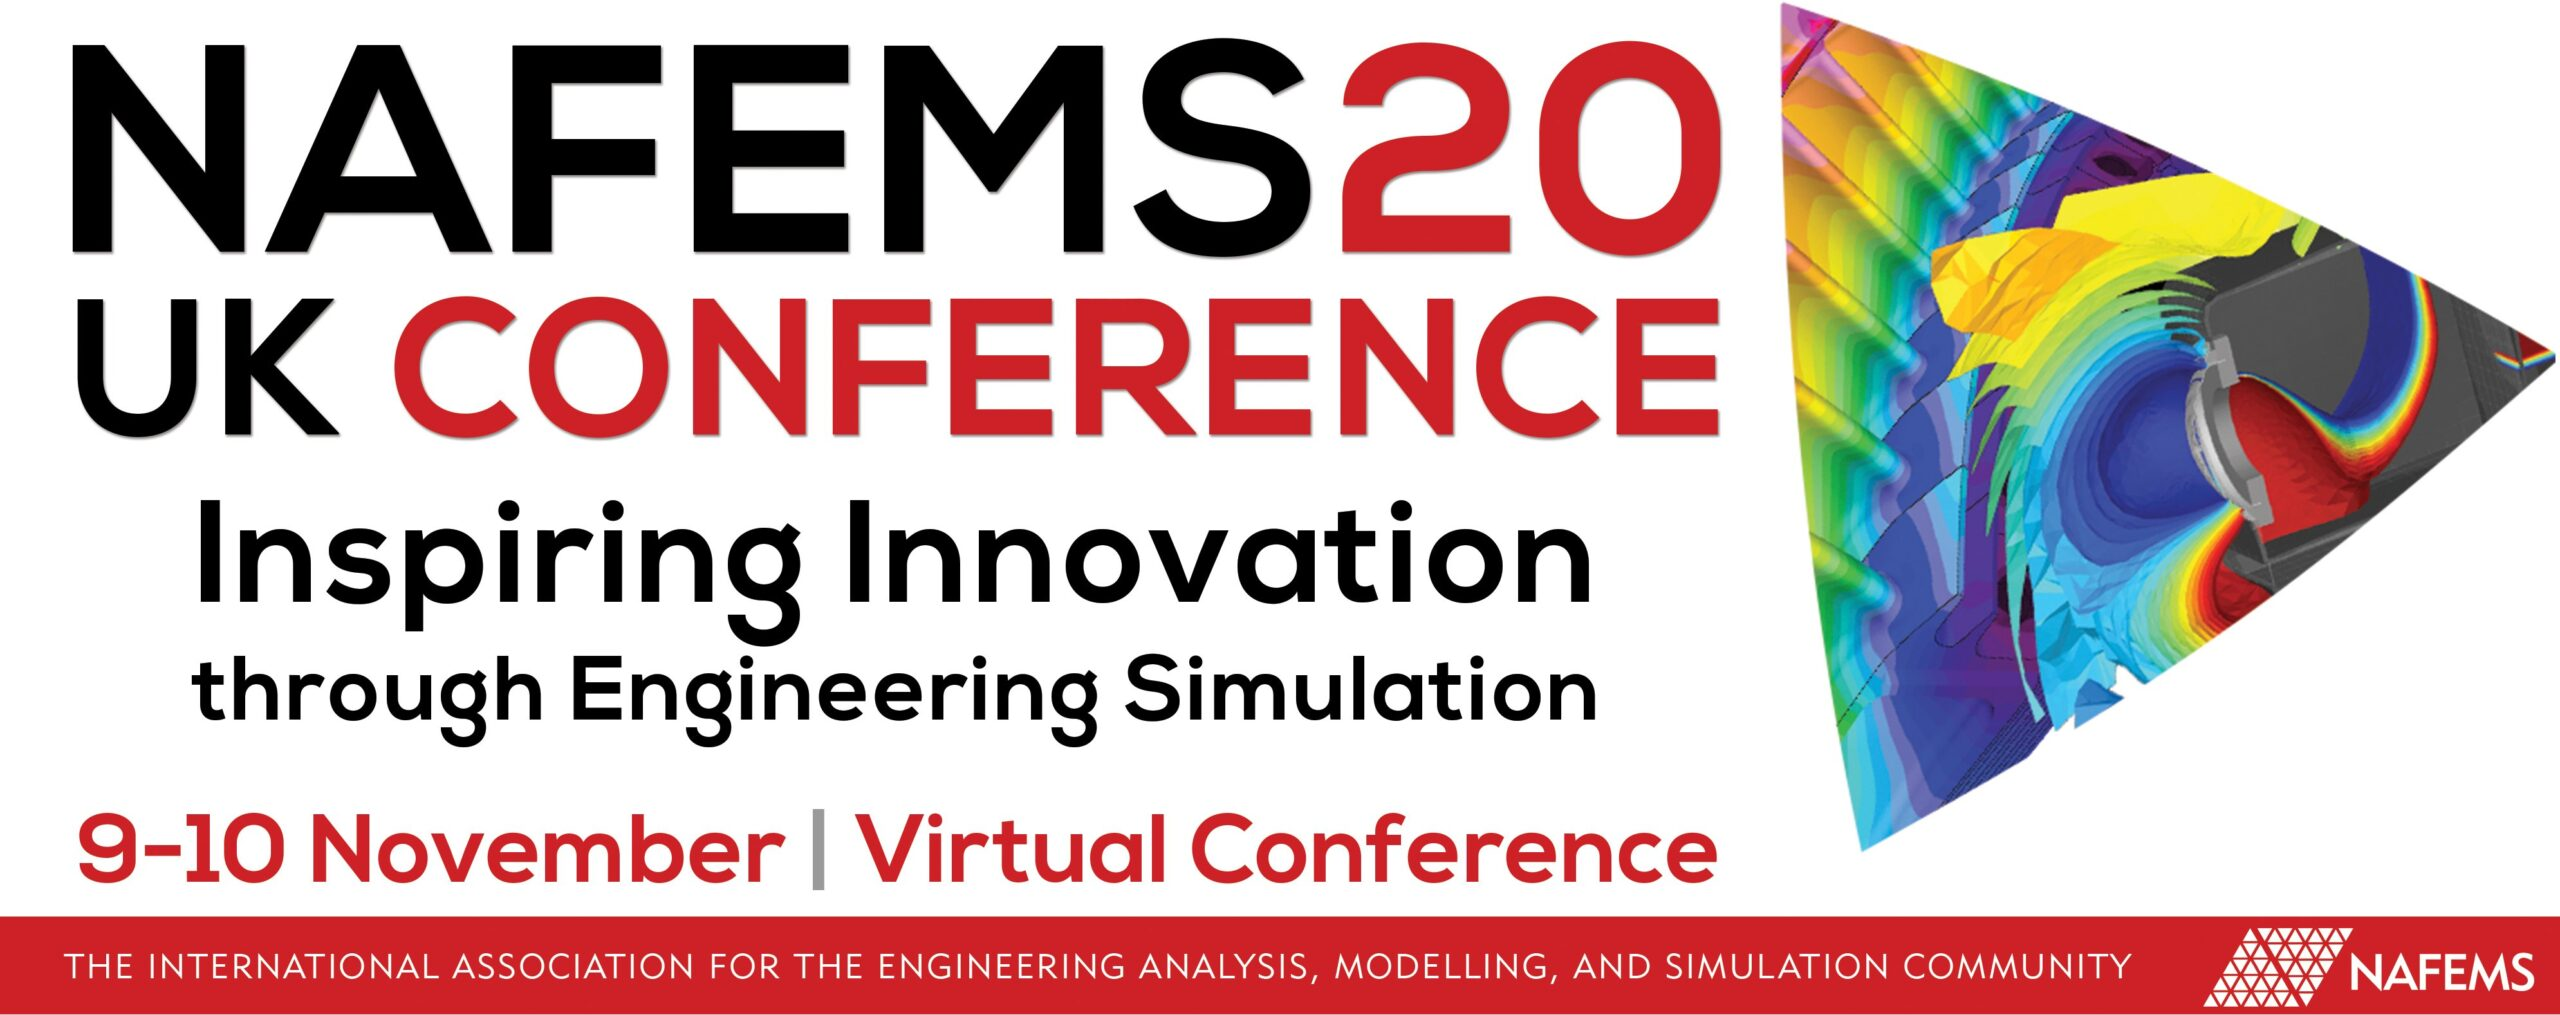 NAFEMS UK Virtual Conference 2020: Learn about Leading Engineering Simulation and Risk Management Solutions